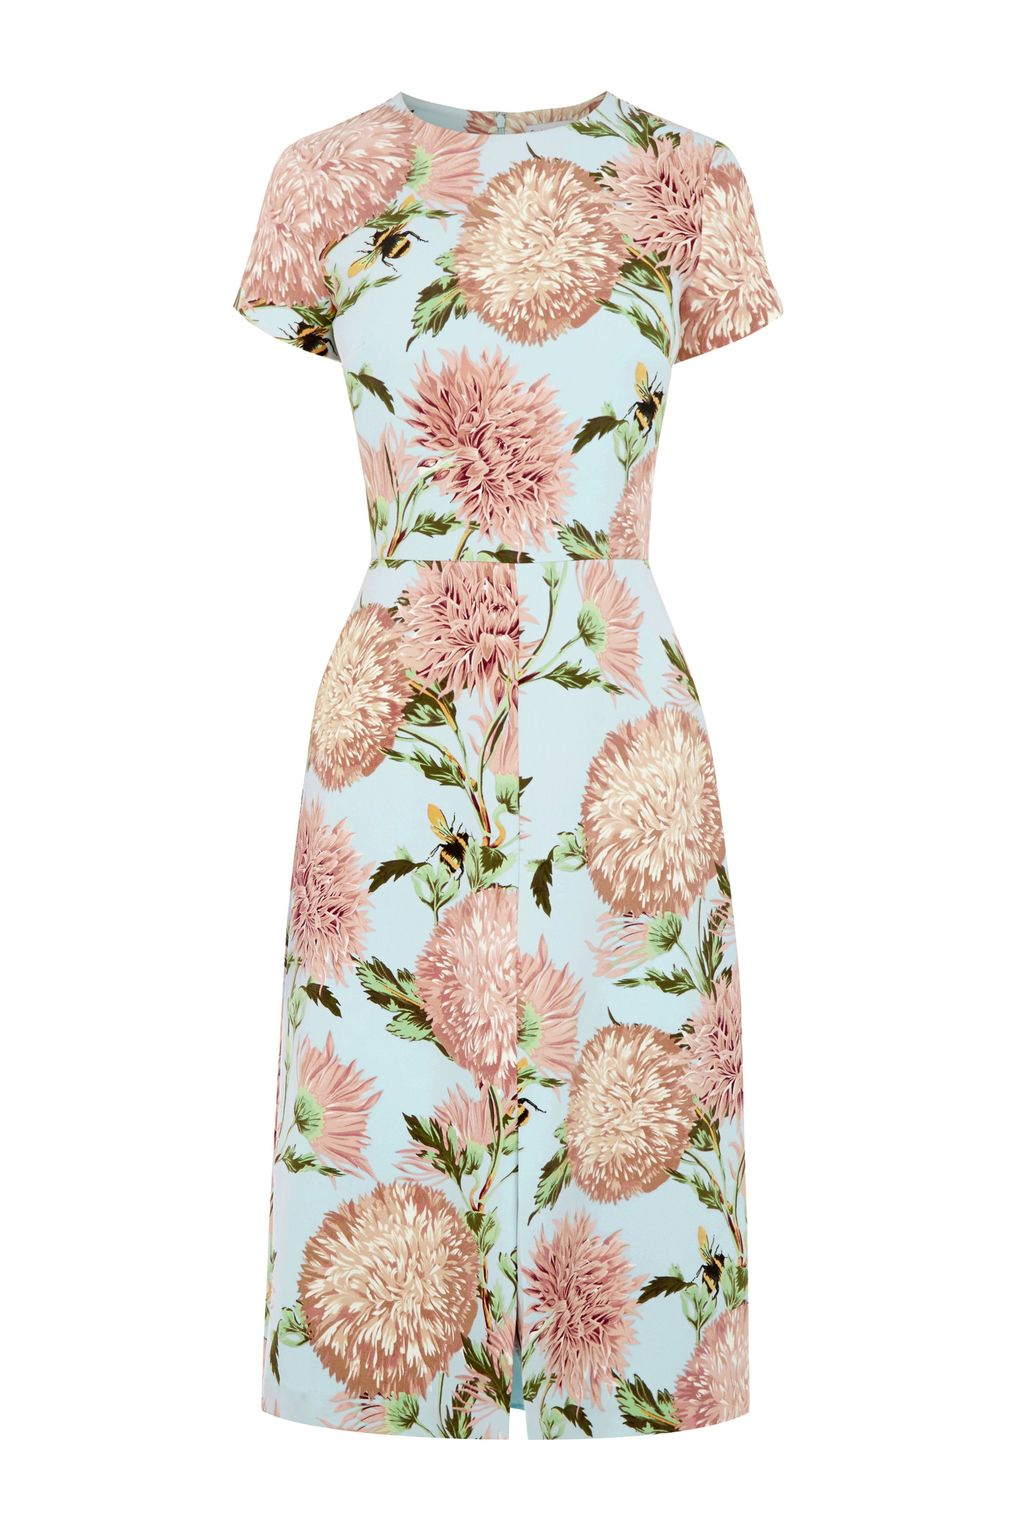 Pom Pom Floral Print Dress, Multi Coloured - style: tea dress; neckline: round neck; fit: tailored/fitted; hip detail: draws attention to hips; predominant colour: blush; secondary colour: pale blue; length: on the knee; fibres: polyester/polyamide - stretch; sleeve length: short sleeve; sleeve style: standard; pattern type: fabric; pattern size: big & busy; pattern: florals; texture group: jersey - stretchy/drapey; occasions: creative work; season: s/s 2016; wardrobe: highlight